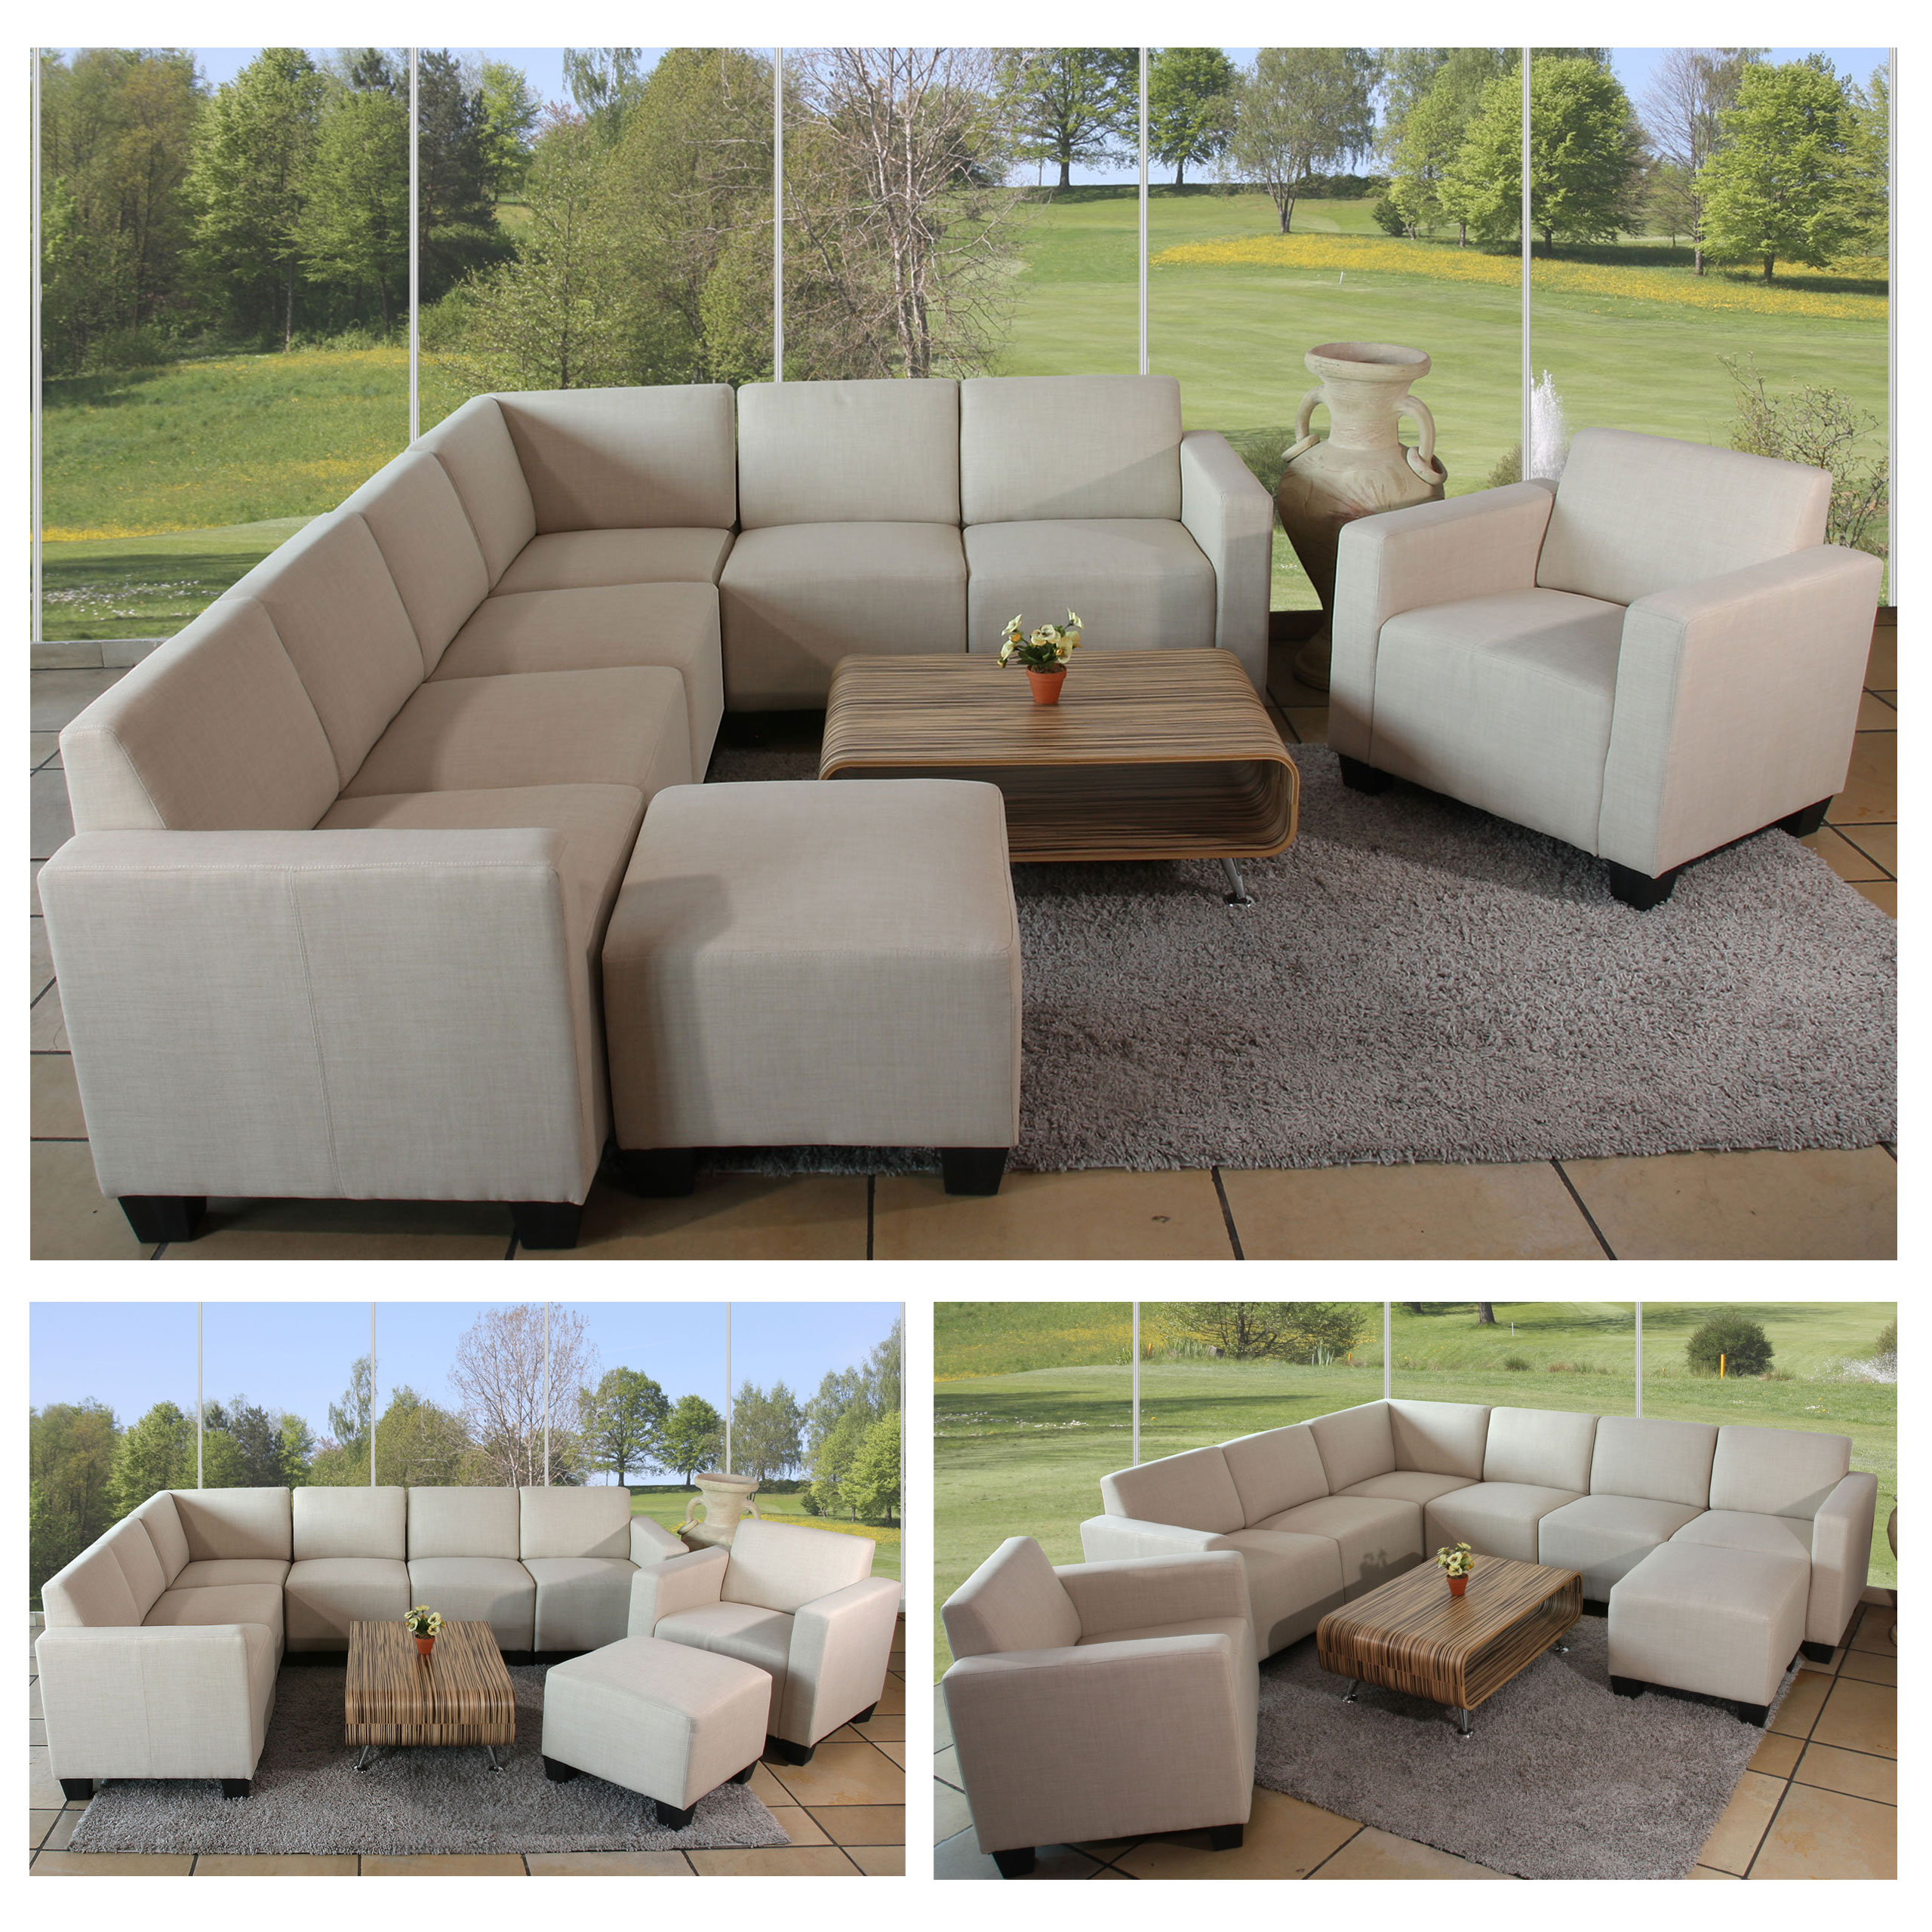 modular sofa system couch garnitur lyon 6 2 textil creme ebay. Black Bedroom Furniture Sets. Home Design Ideas